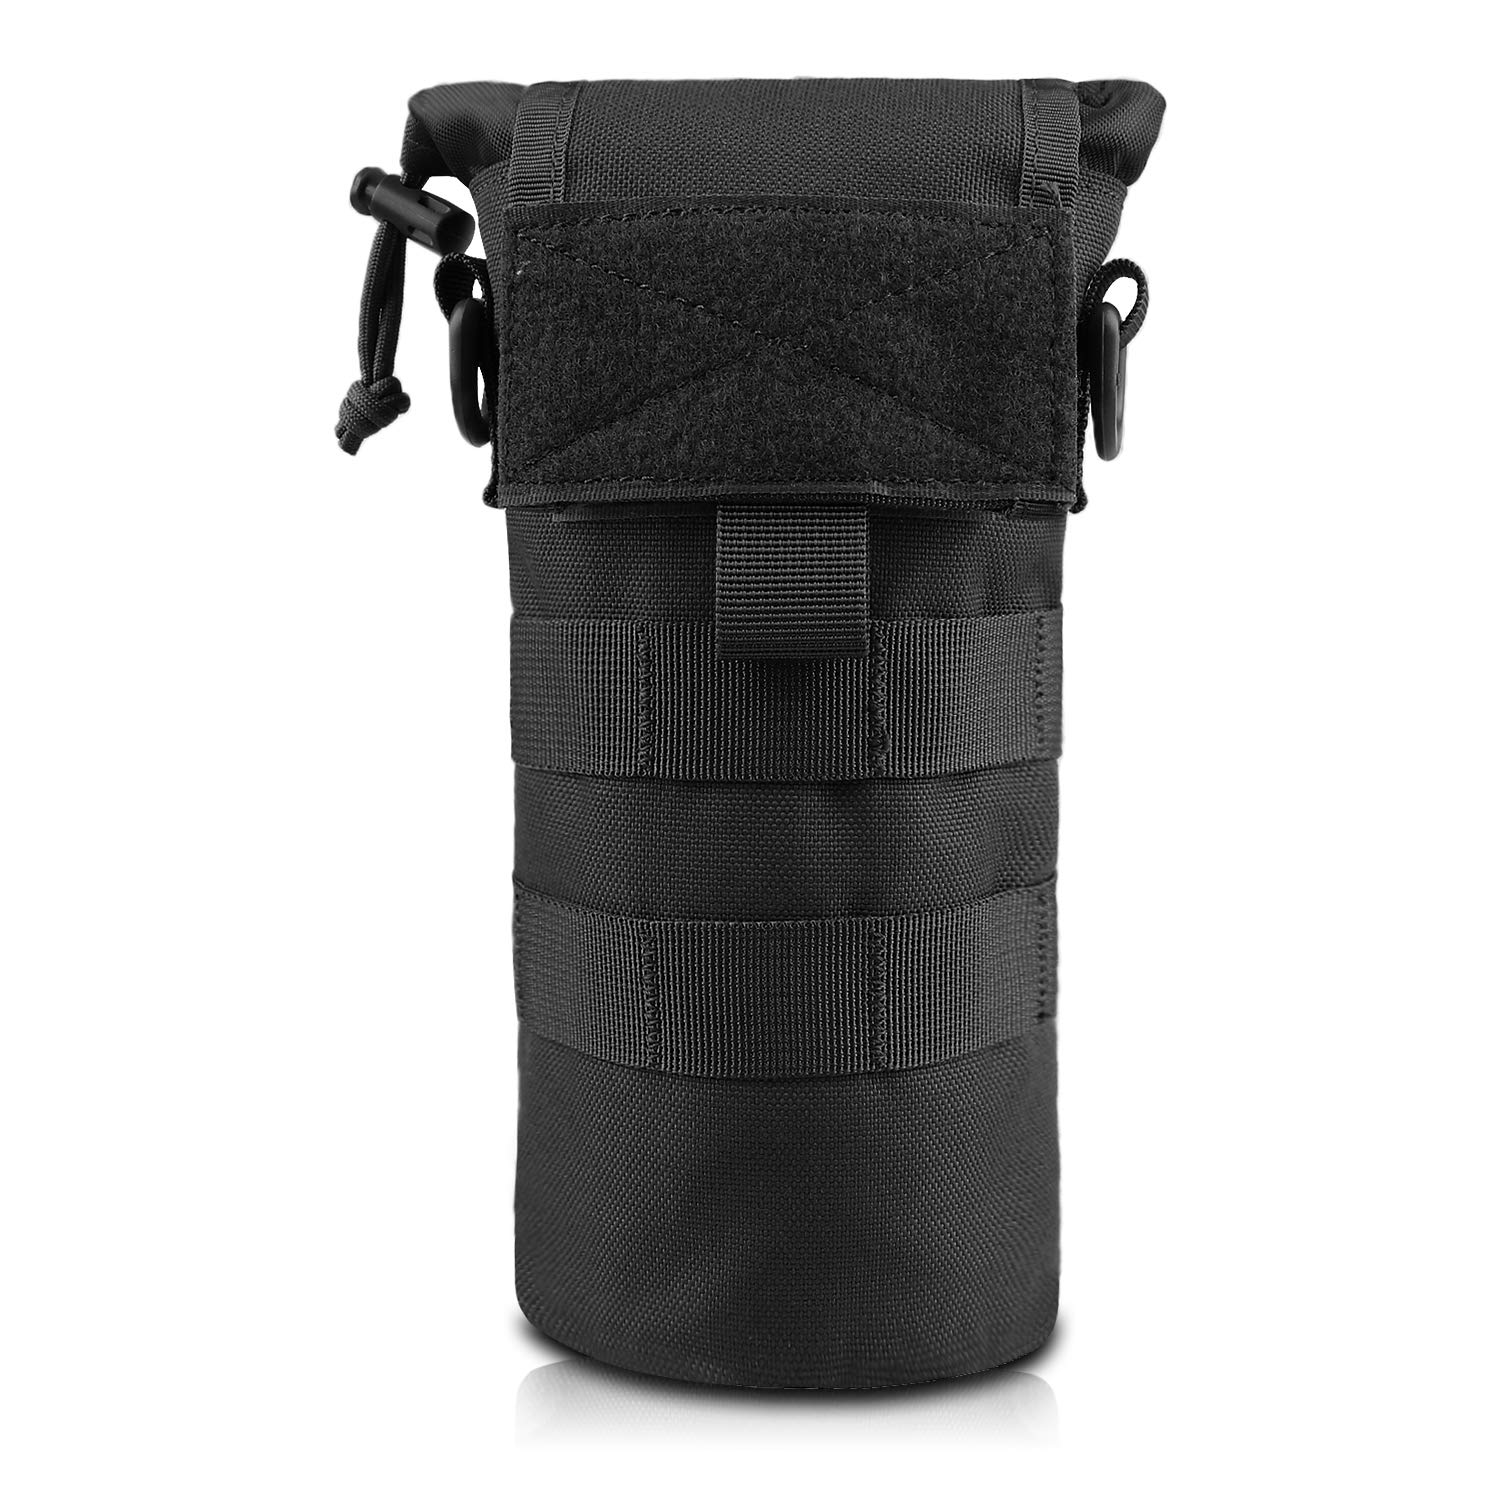 AMYIPO Water Bottle Pouch Molle Tactical Holder Storage Bag for 32oz Carrier